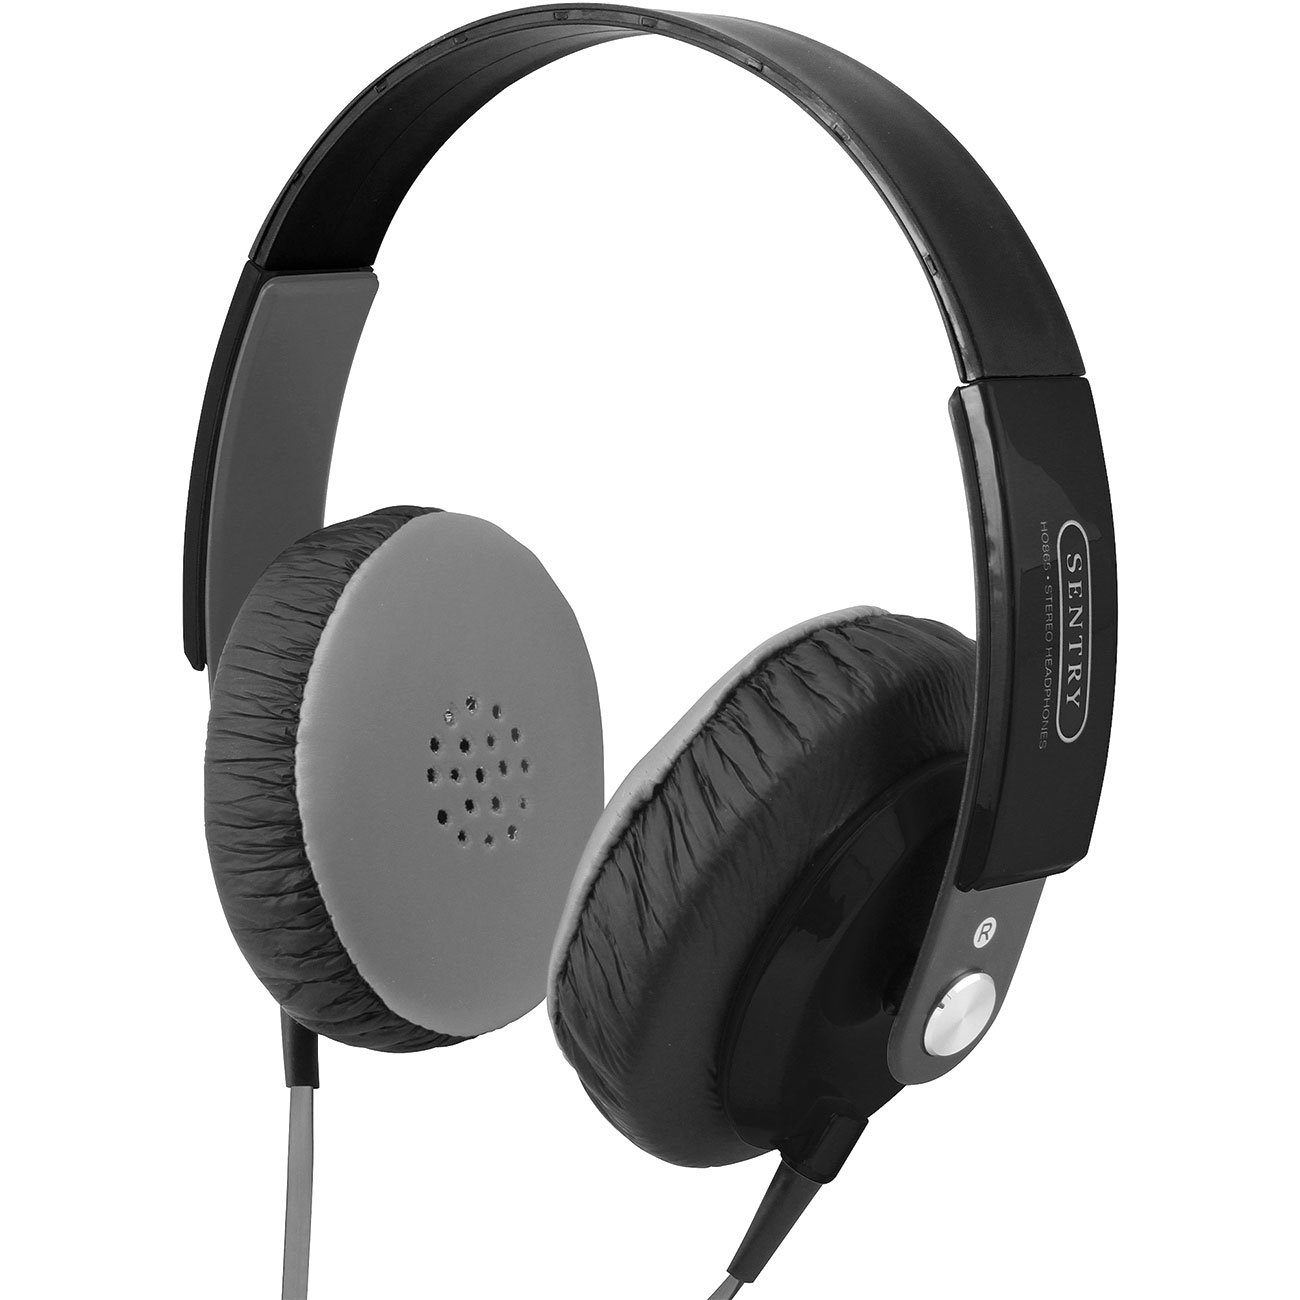 Digital Stereo Headphones w- In-Line Volume Control